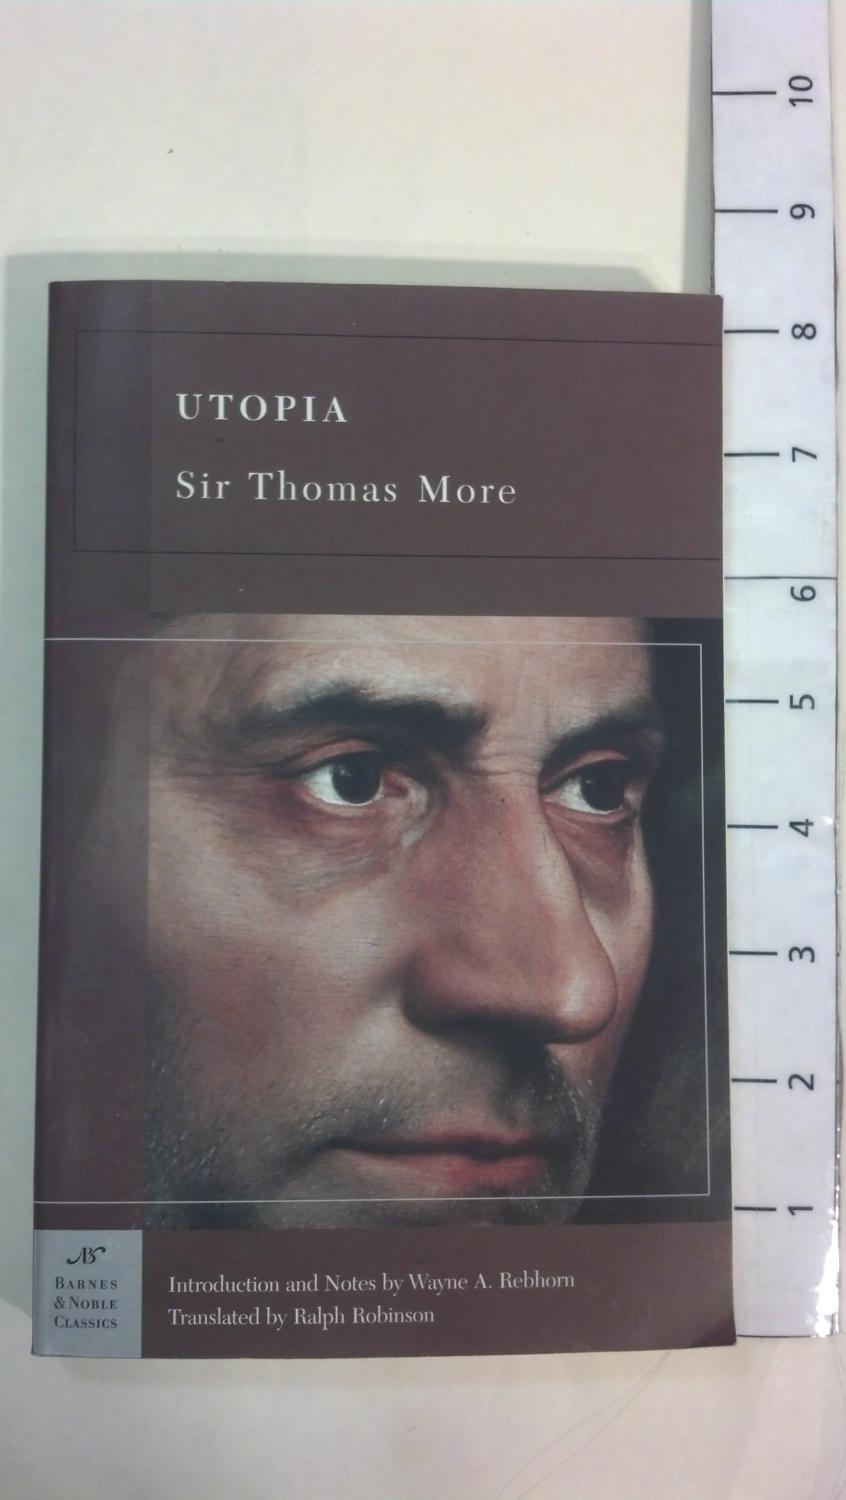 The Philosophy of Thomas More   YouTube Procession of the Anemolian ambassadors  from a      French translation of   Utopia